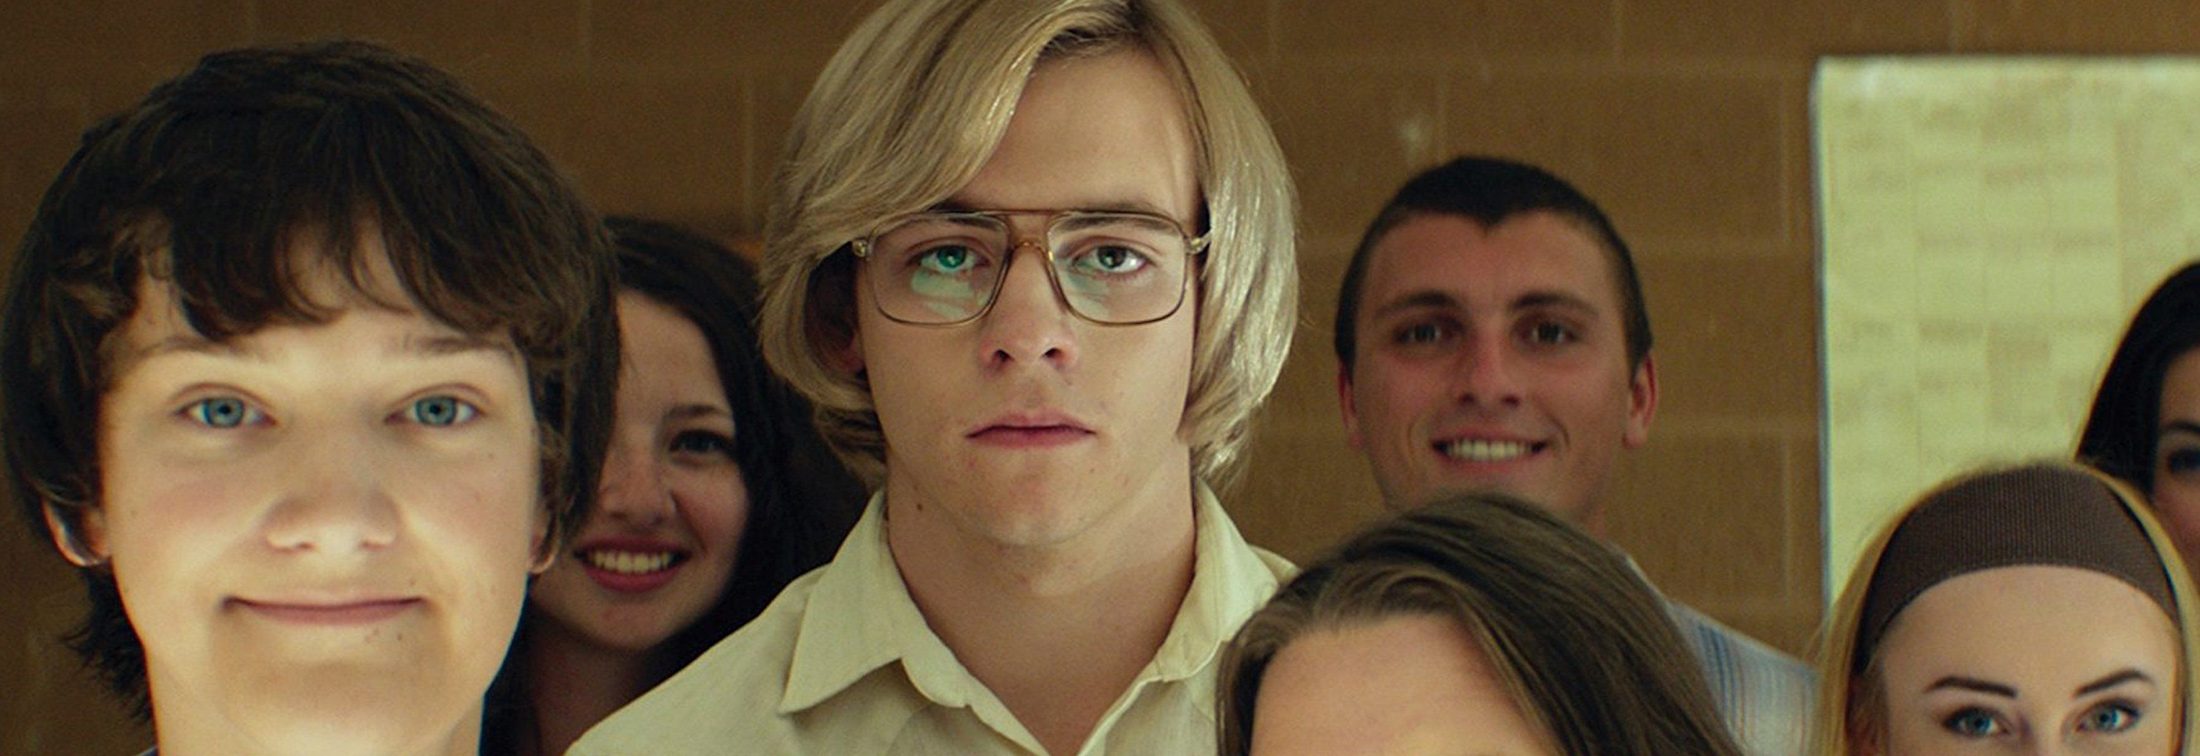 My Friend Dahmer - A haunting portrait of a serial killer as a young man